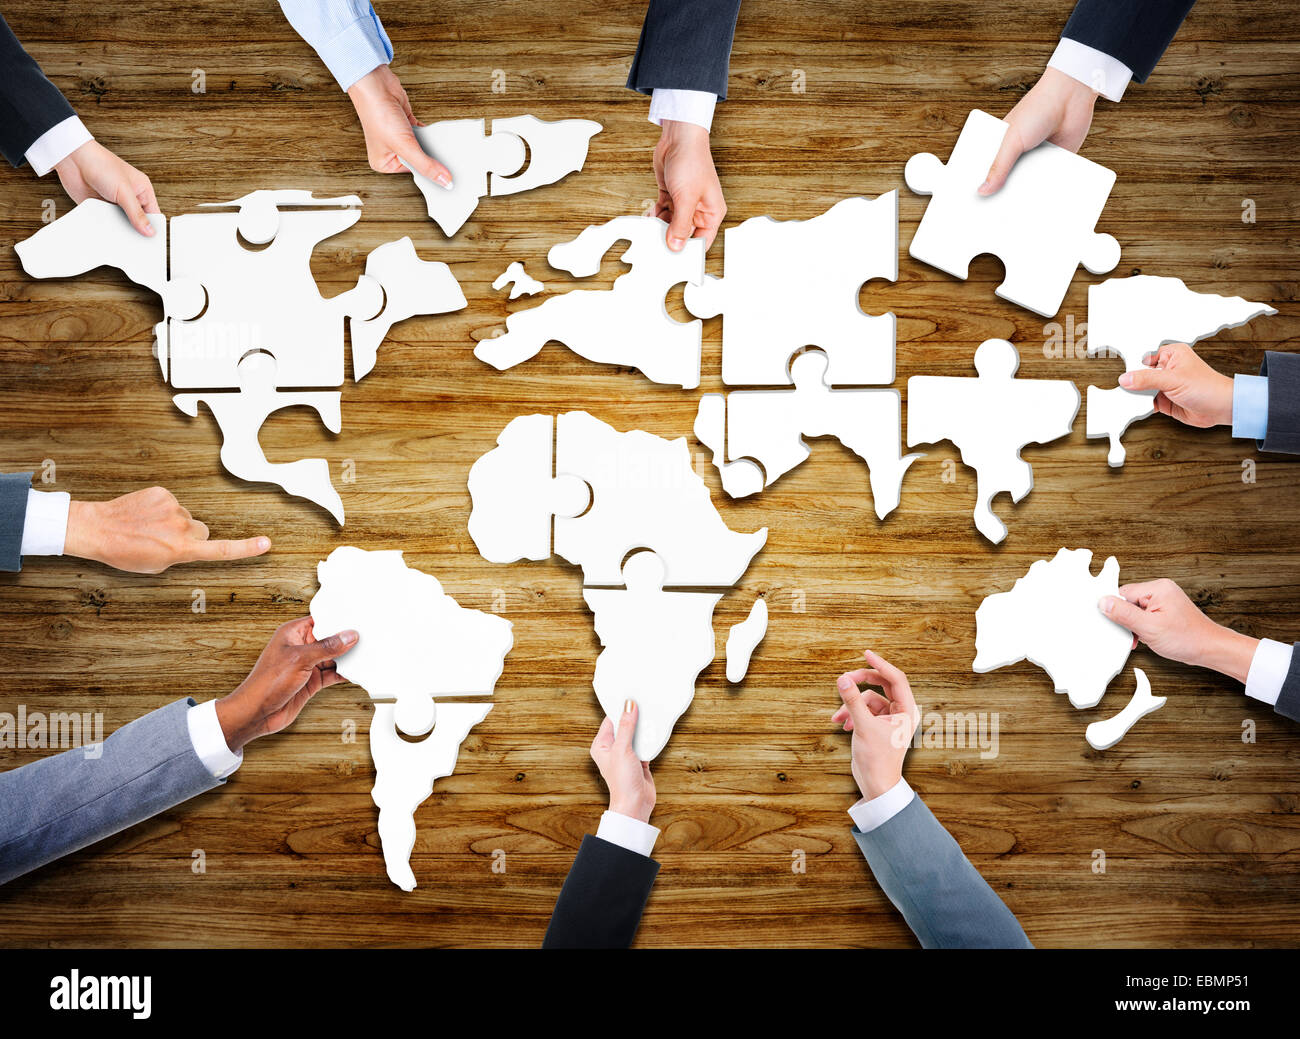 Jigsaw puzzle world map stock photos jigsaw puzzle world map stock group of business people with jigsaw puzzle forming in world map stock image gumiabroncs Image collections